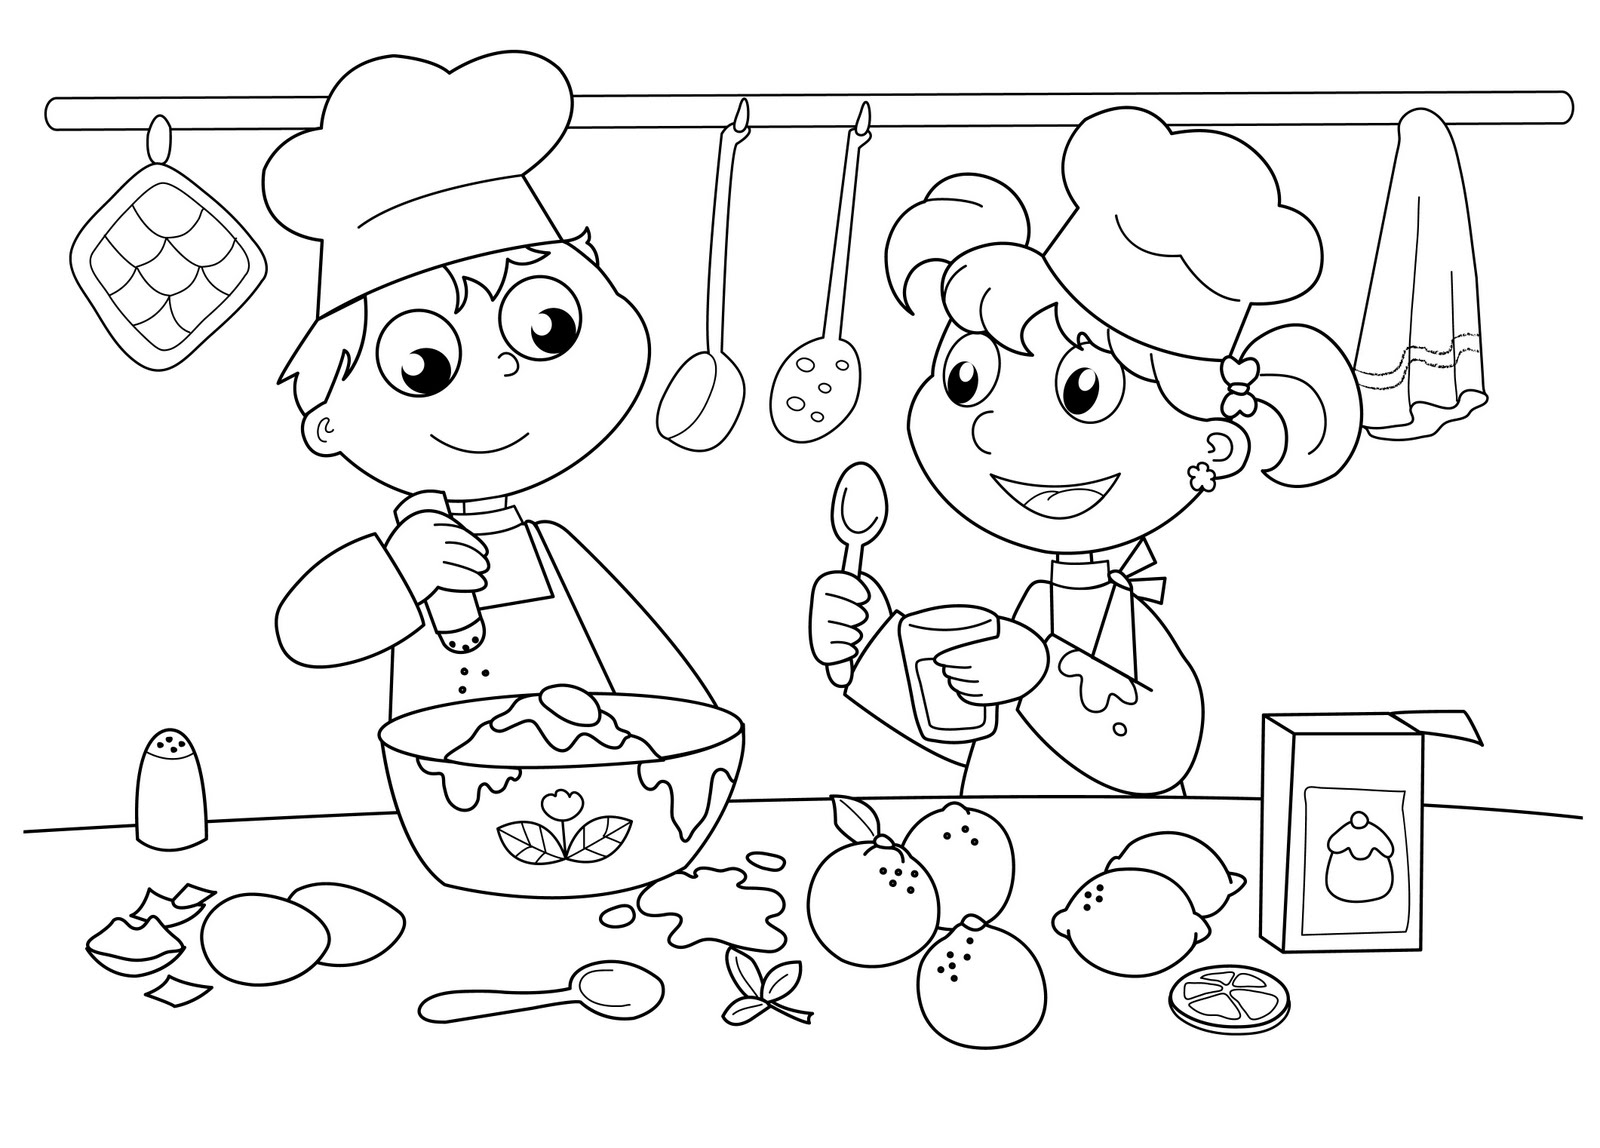 Baking Coloring Pages At Getcolorings